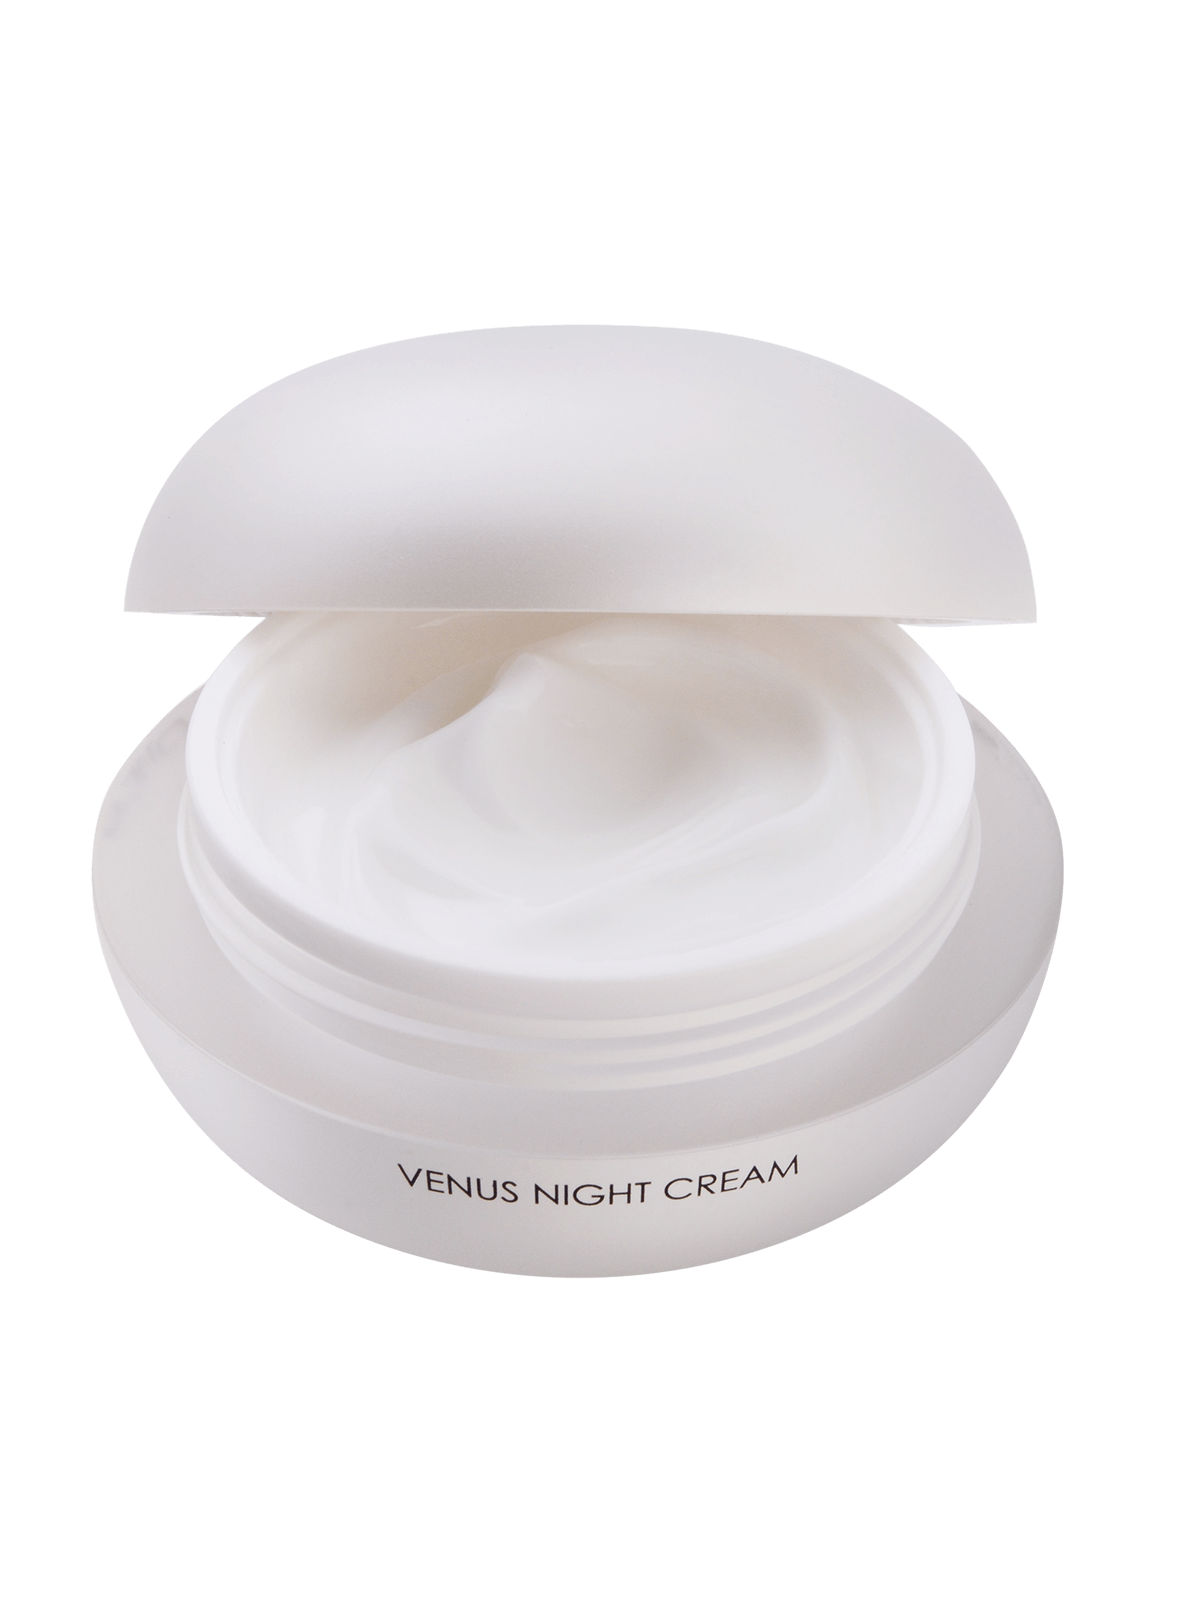 Venus Night Cream with open lid